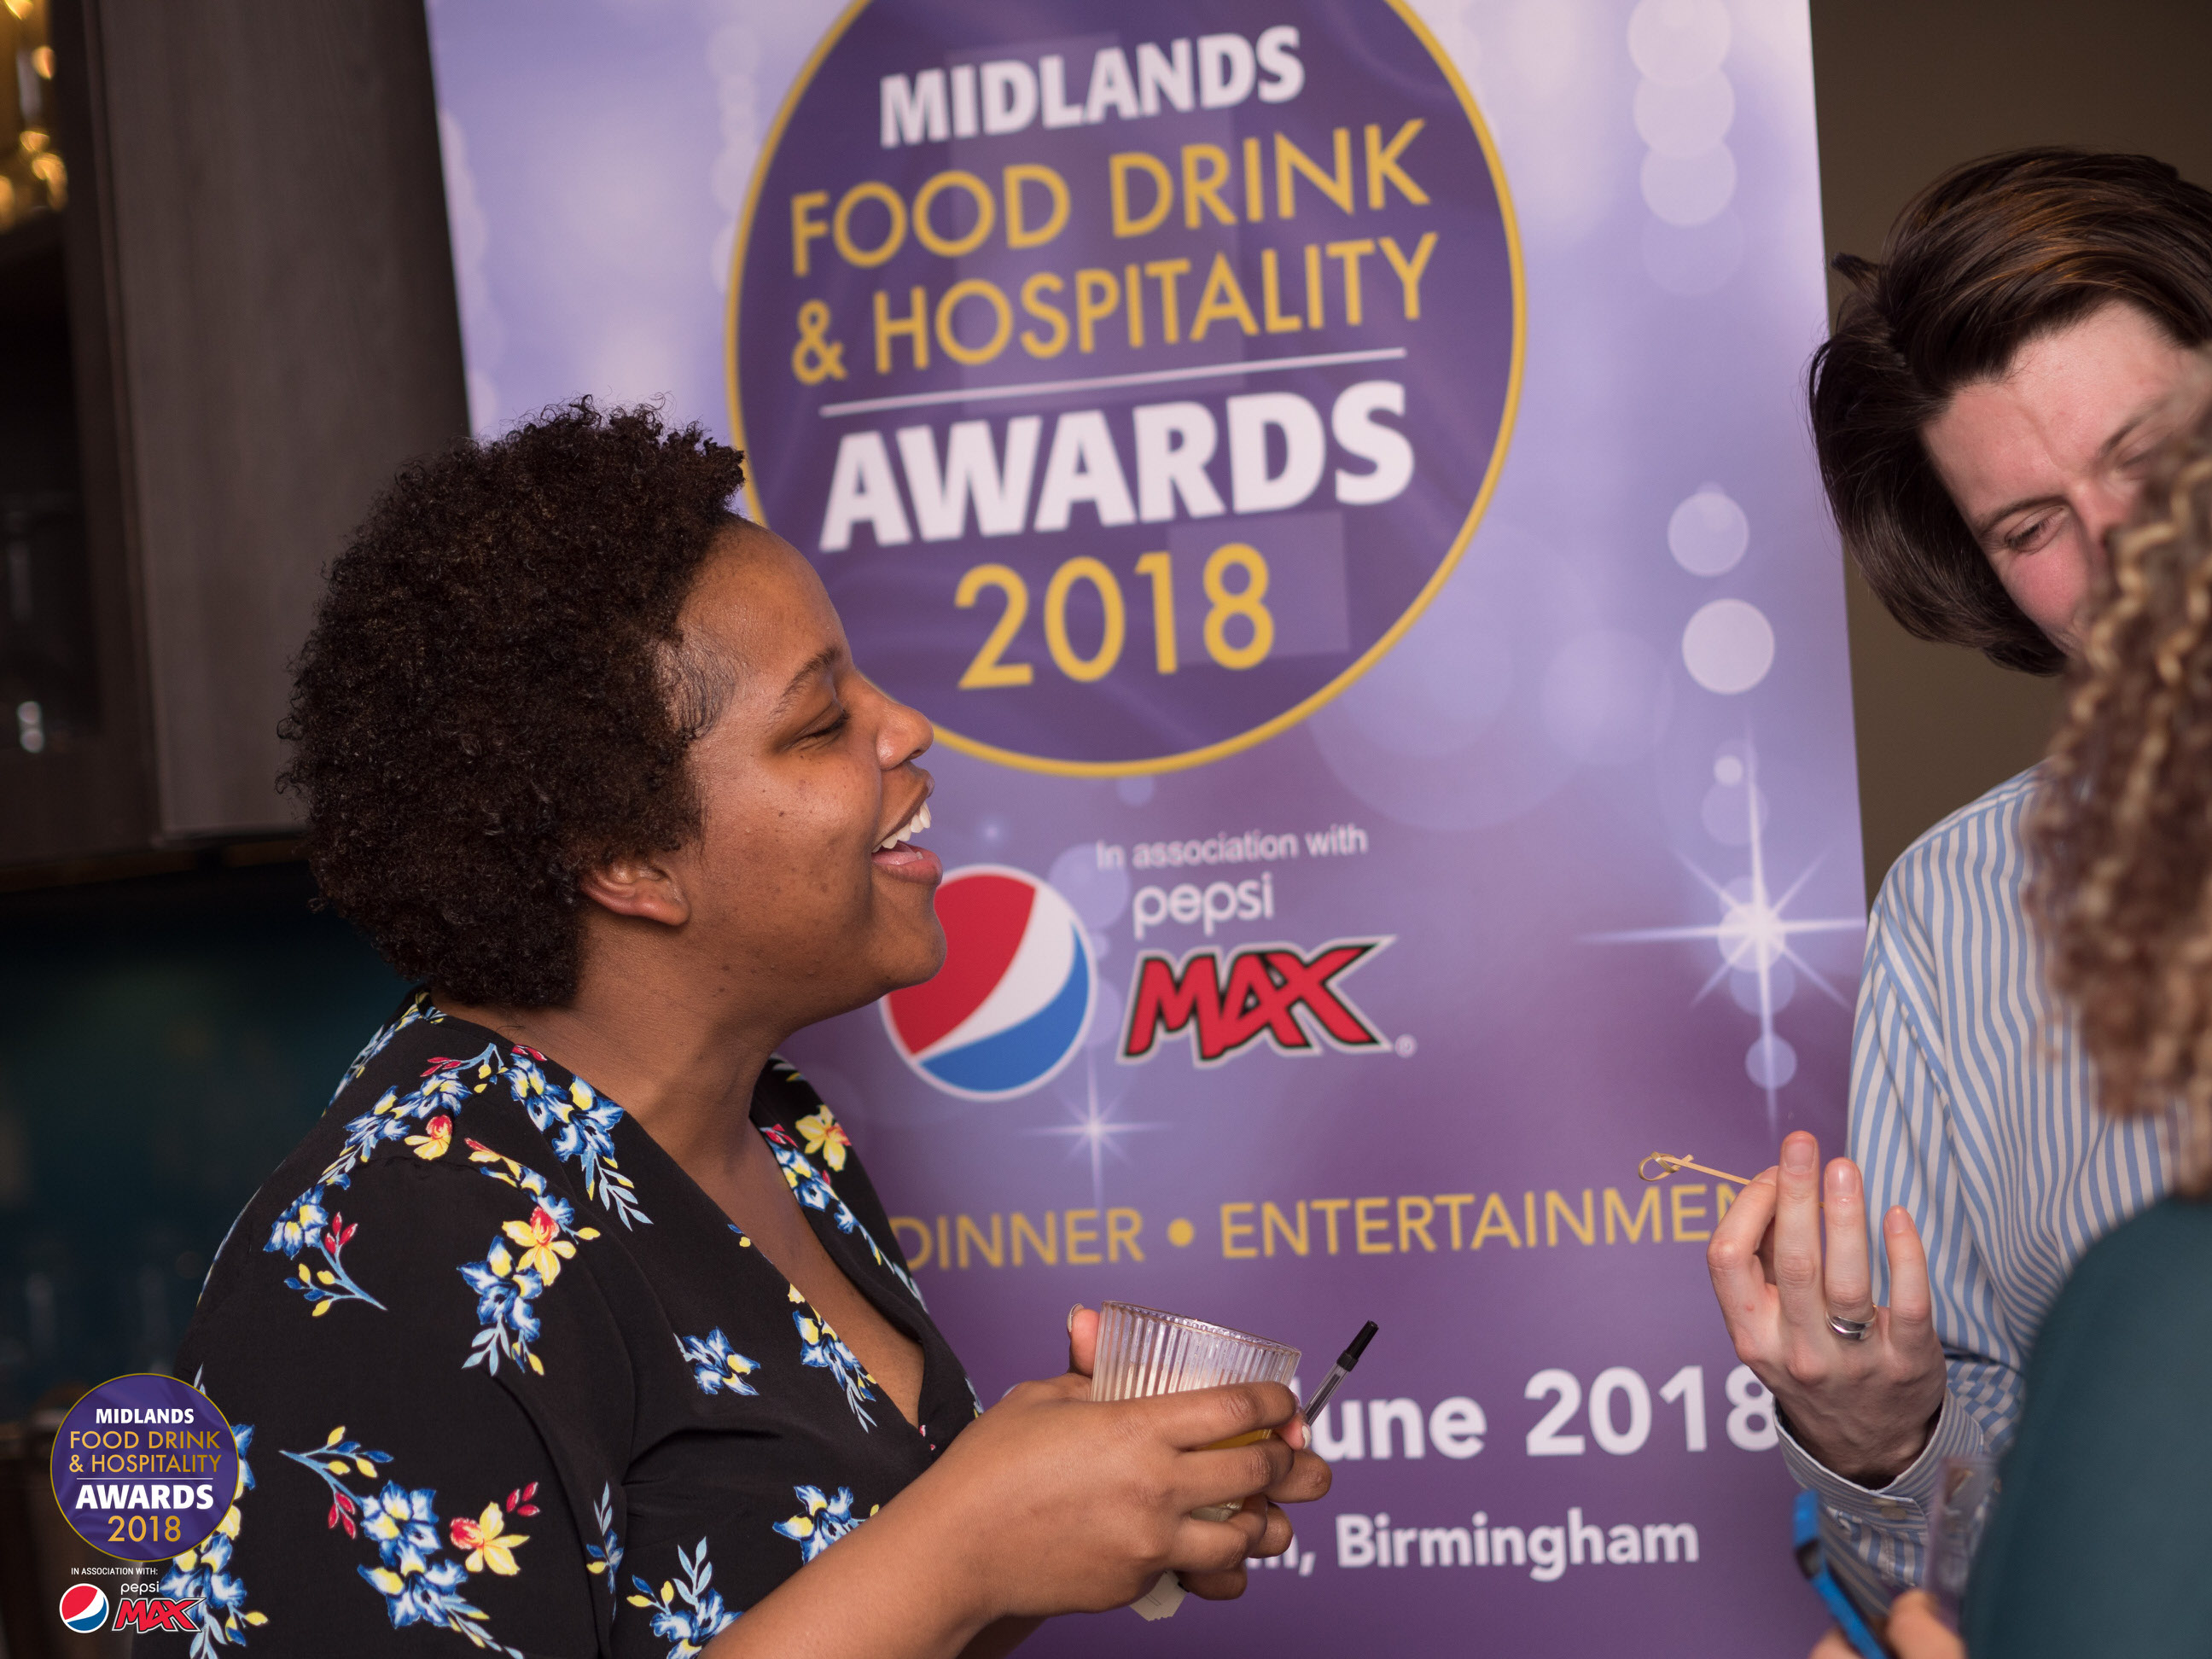 Just One Week Left To Nominate For The Midlands Food Drink & Hospitality Awards.